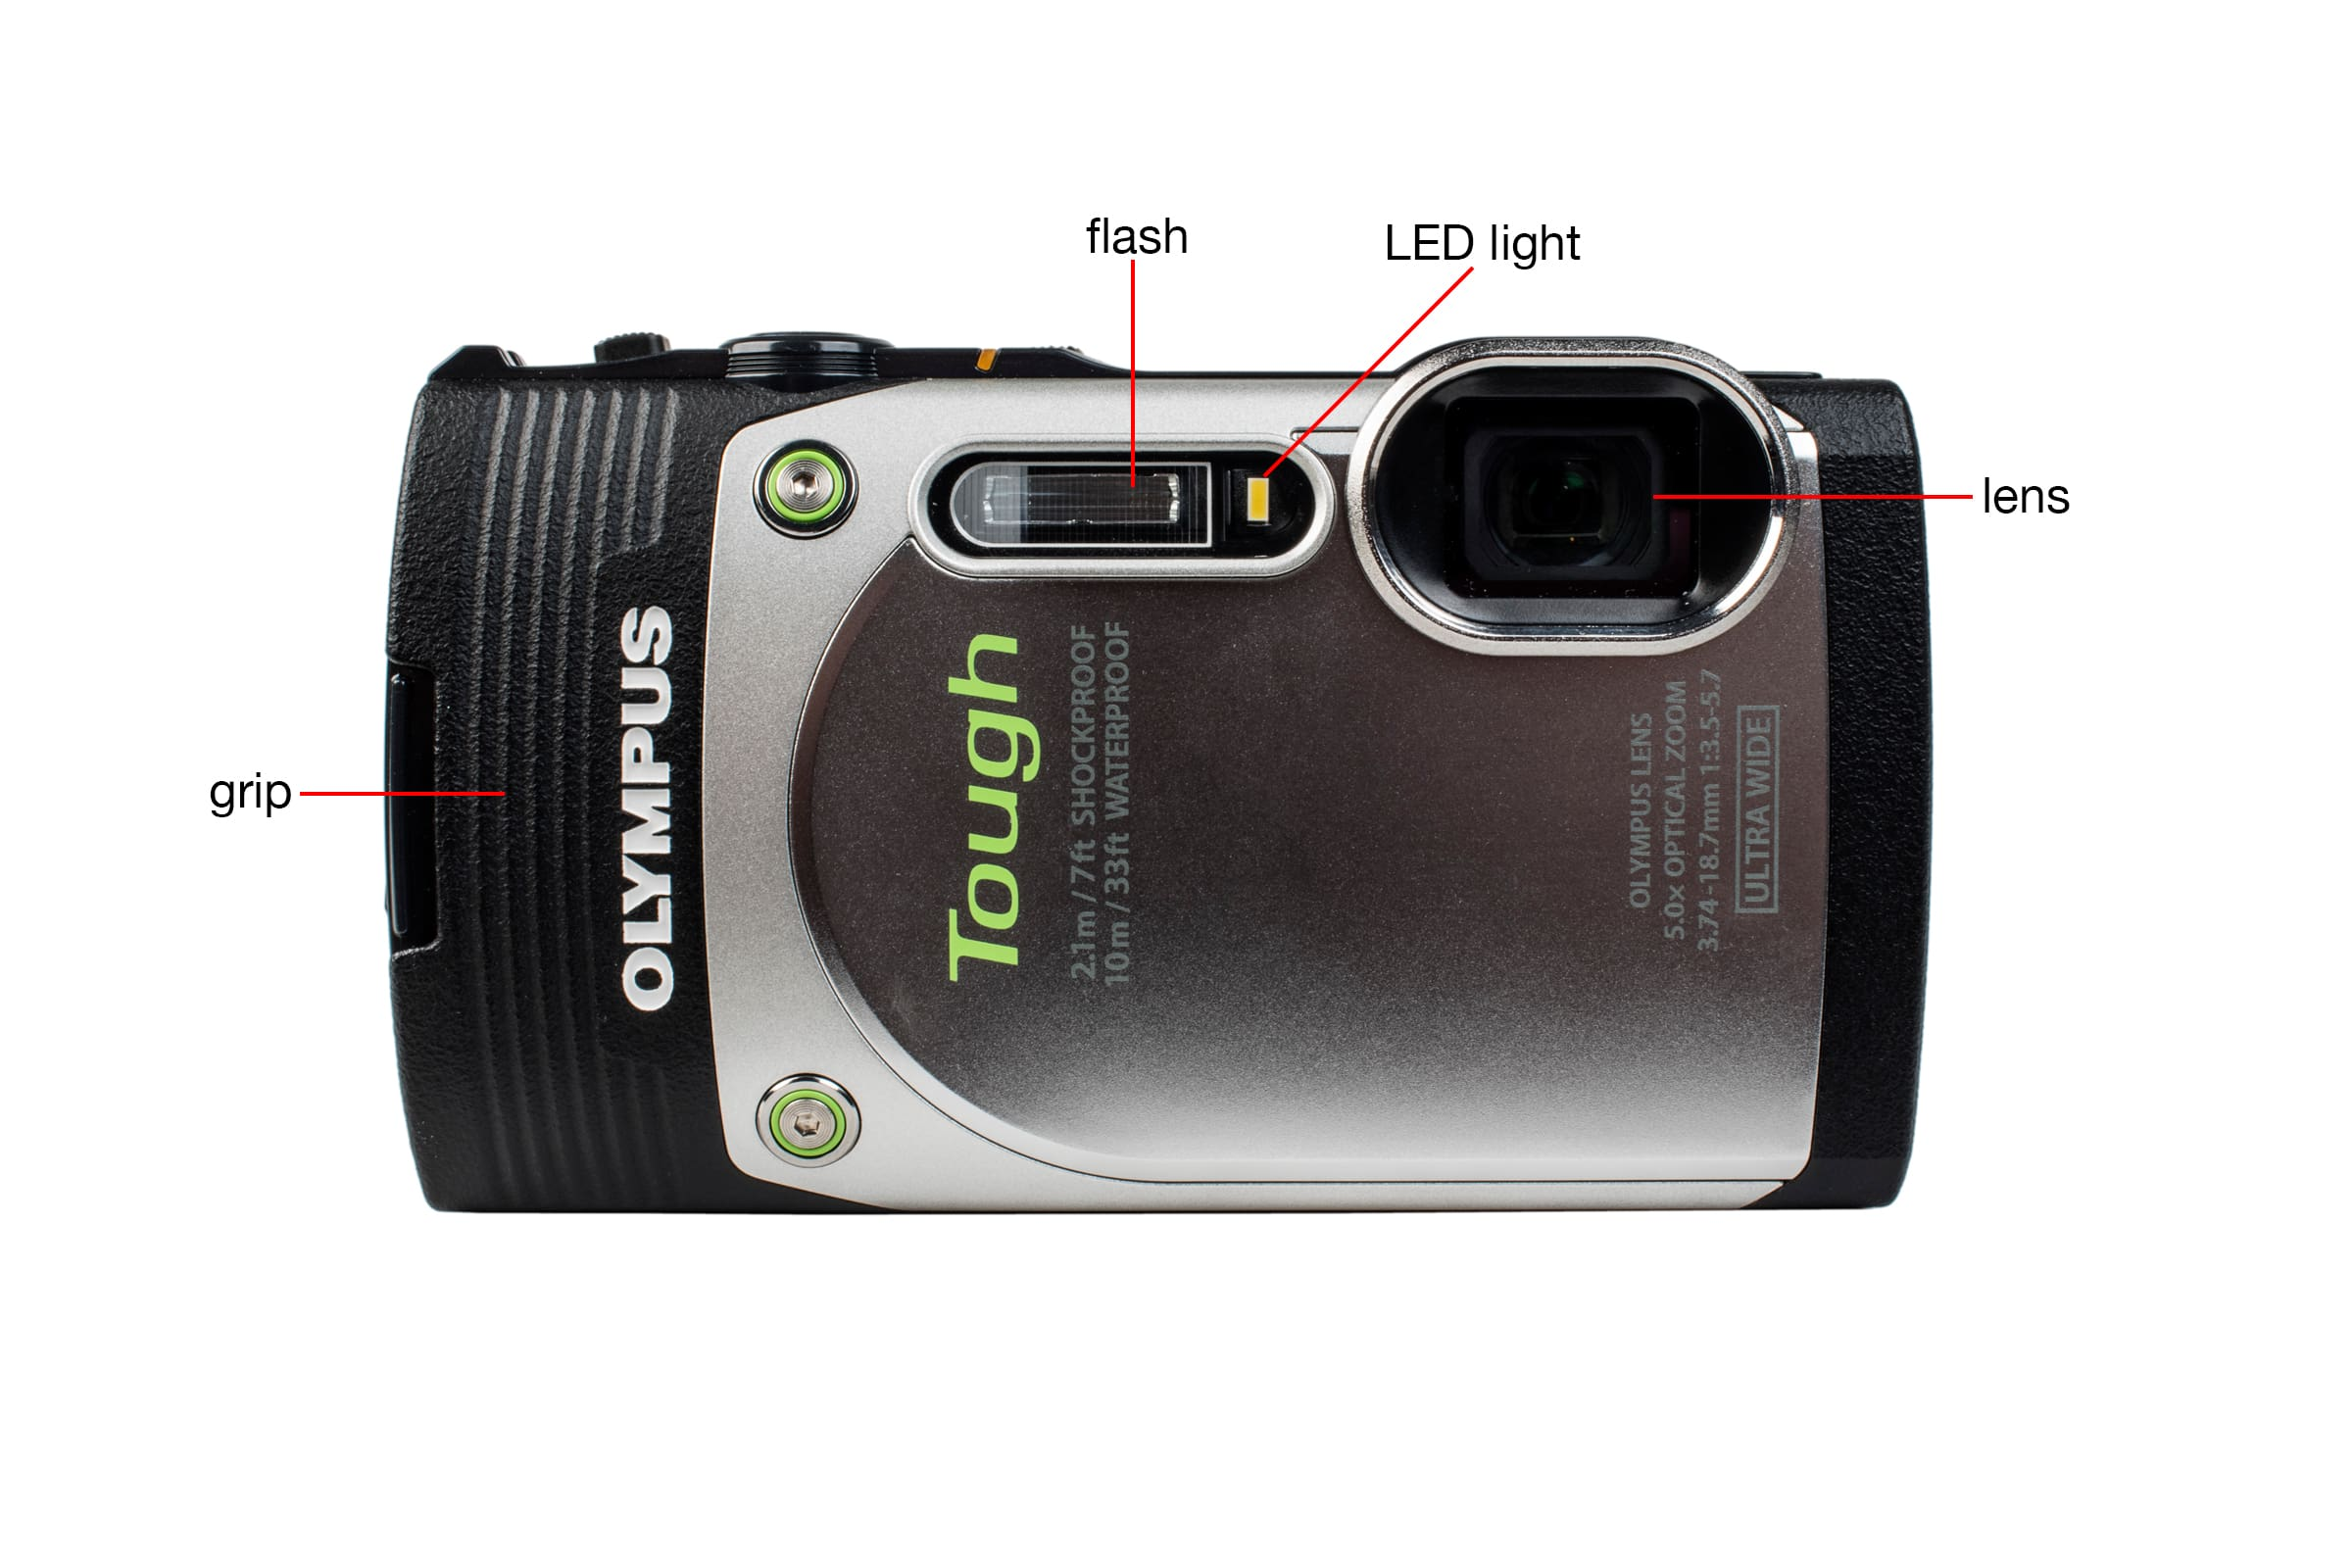 A closer look at the front of the Olympus Stylus TG-850.